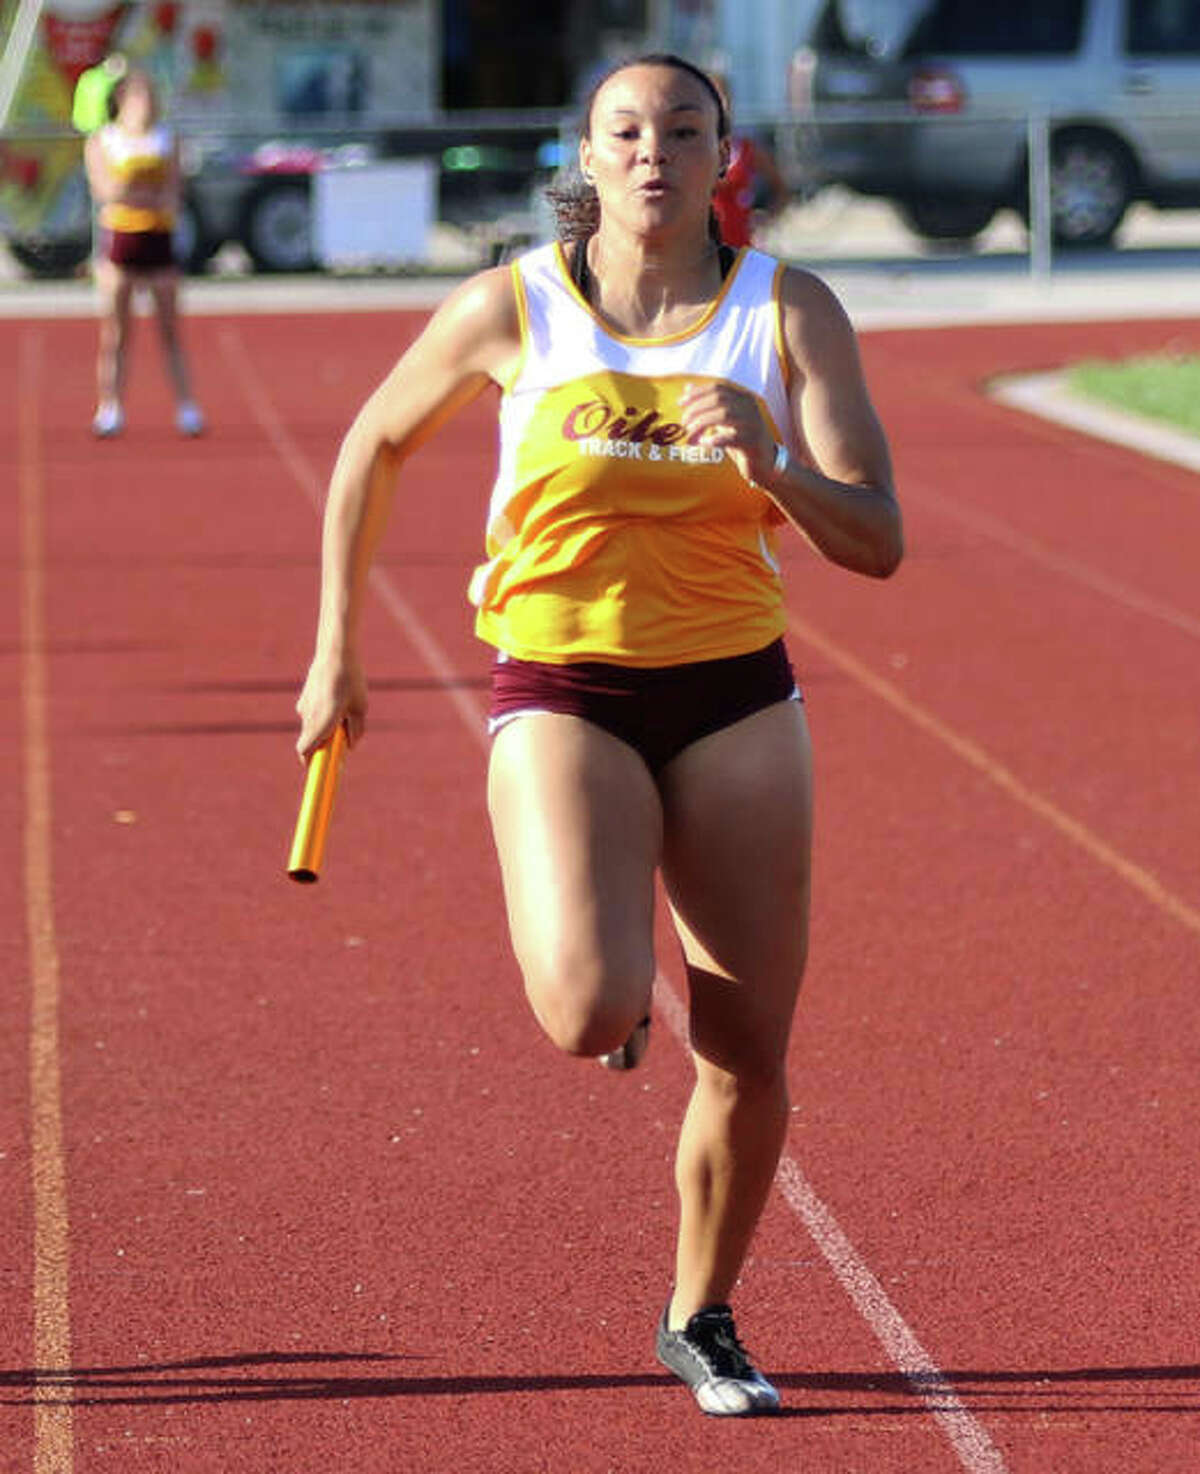 EA-WR's Jayden Ulrich runs the anchor leg in the Oilers' 4x100 relay at the 2019 Prairie State Conference Meet in Wood River. Ulrich, now a senior, has since given up her sprint duties to concentrate on the throws for EA-WR track.